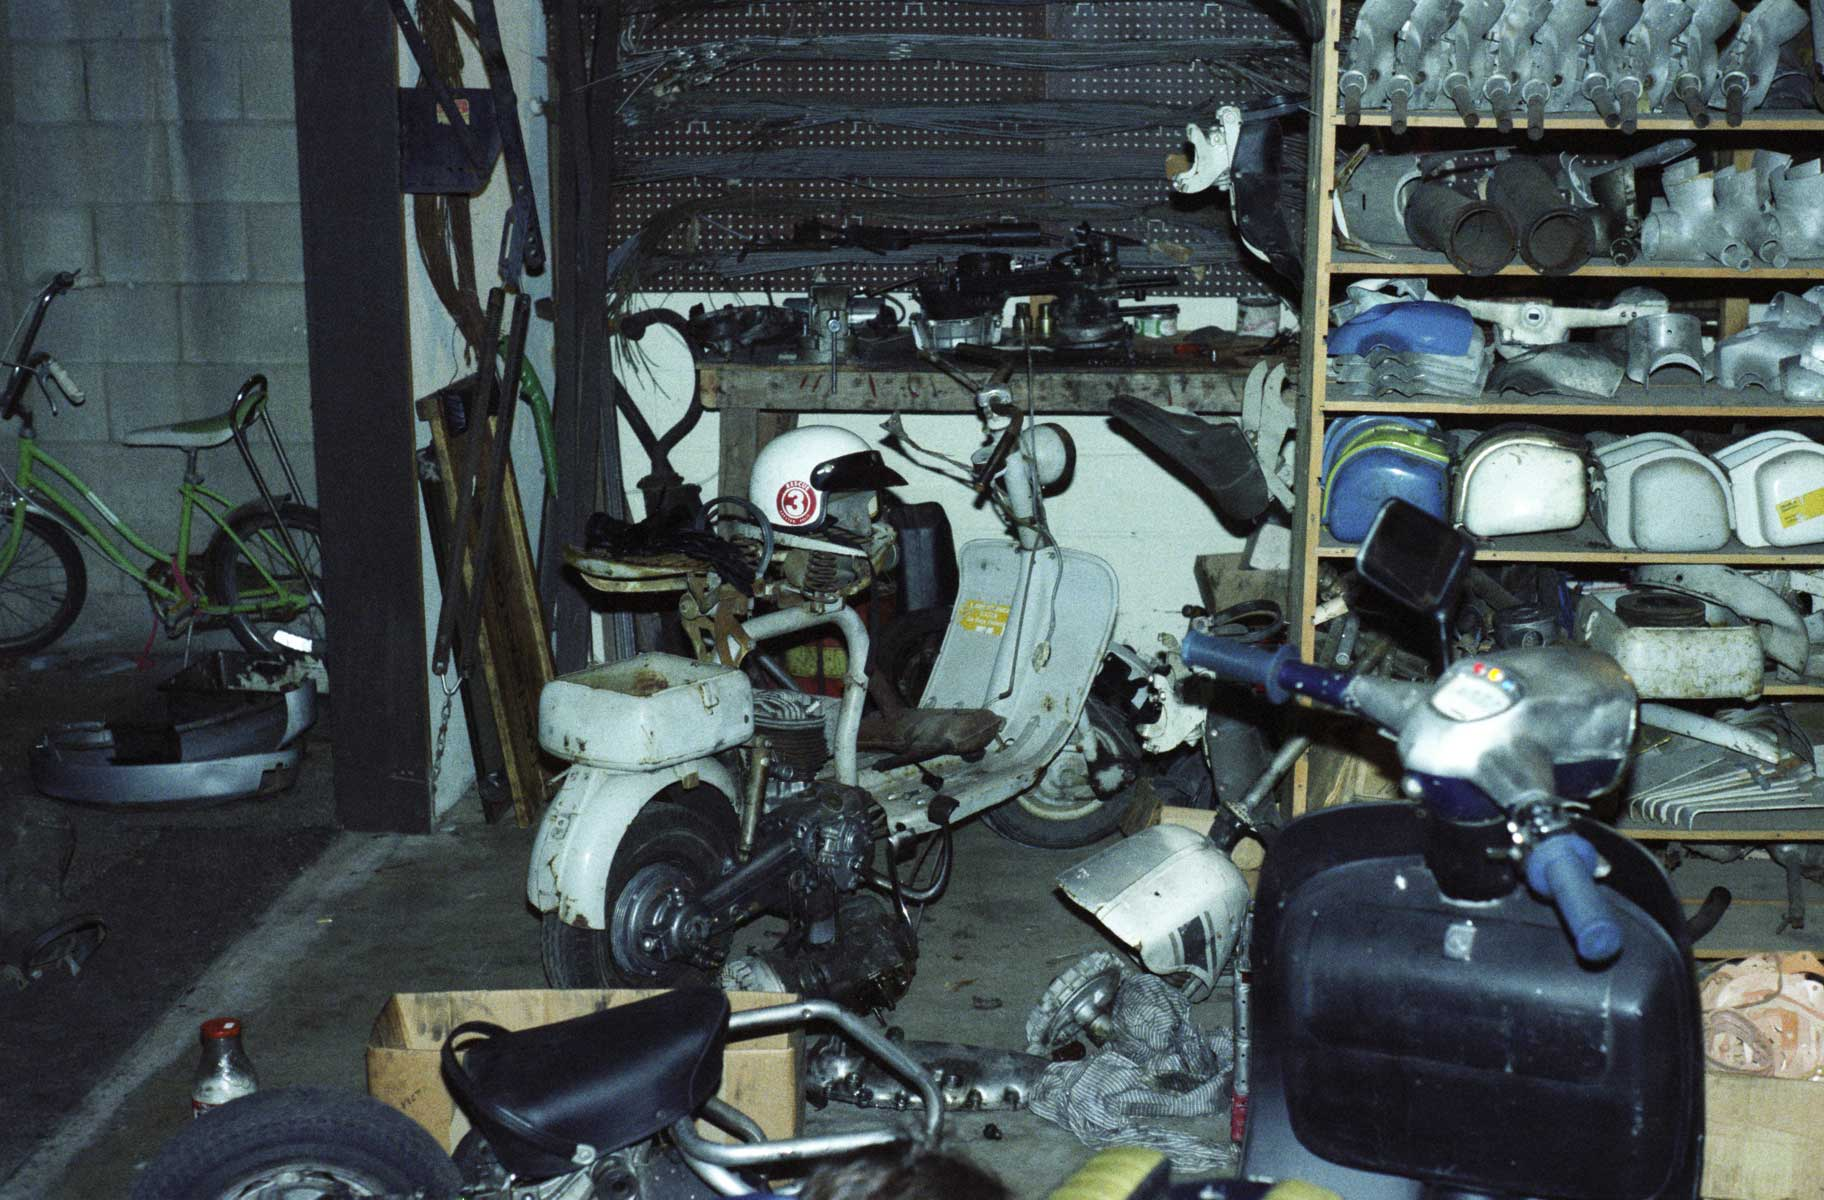 Check out those original Innocenti tool boxes, engine cases, and gray cables with inline oilers!